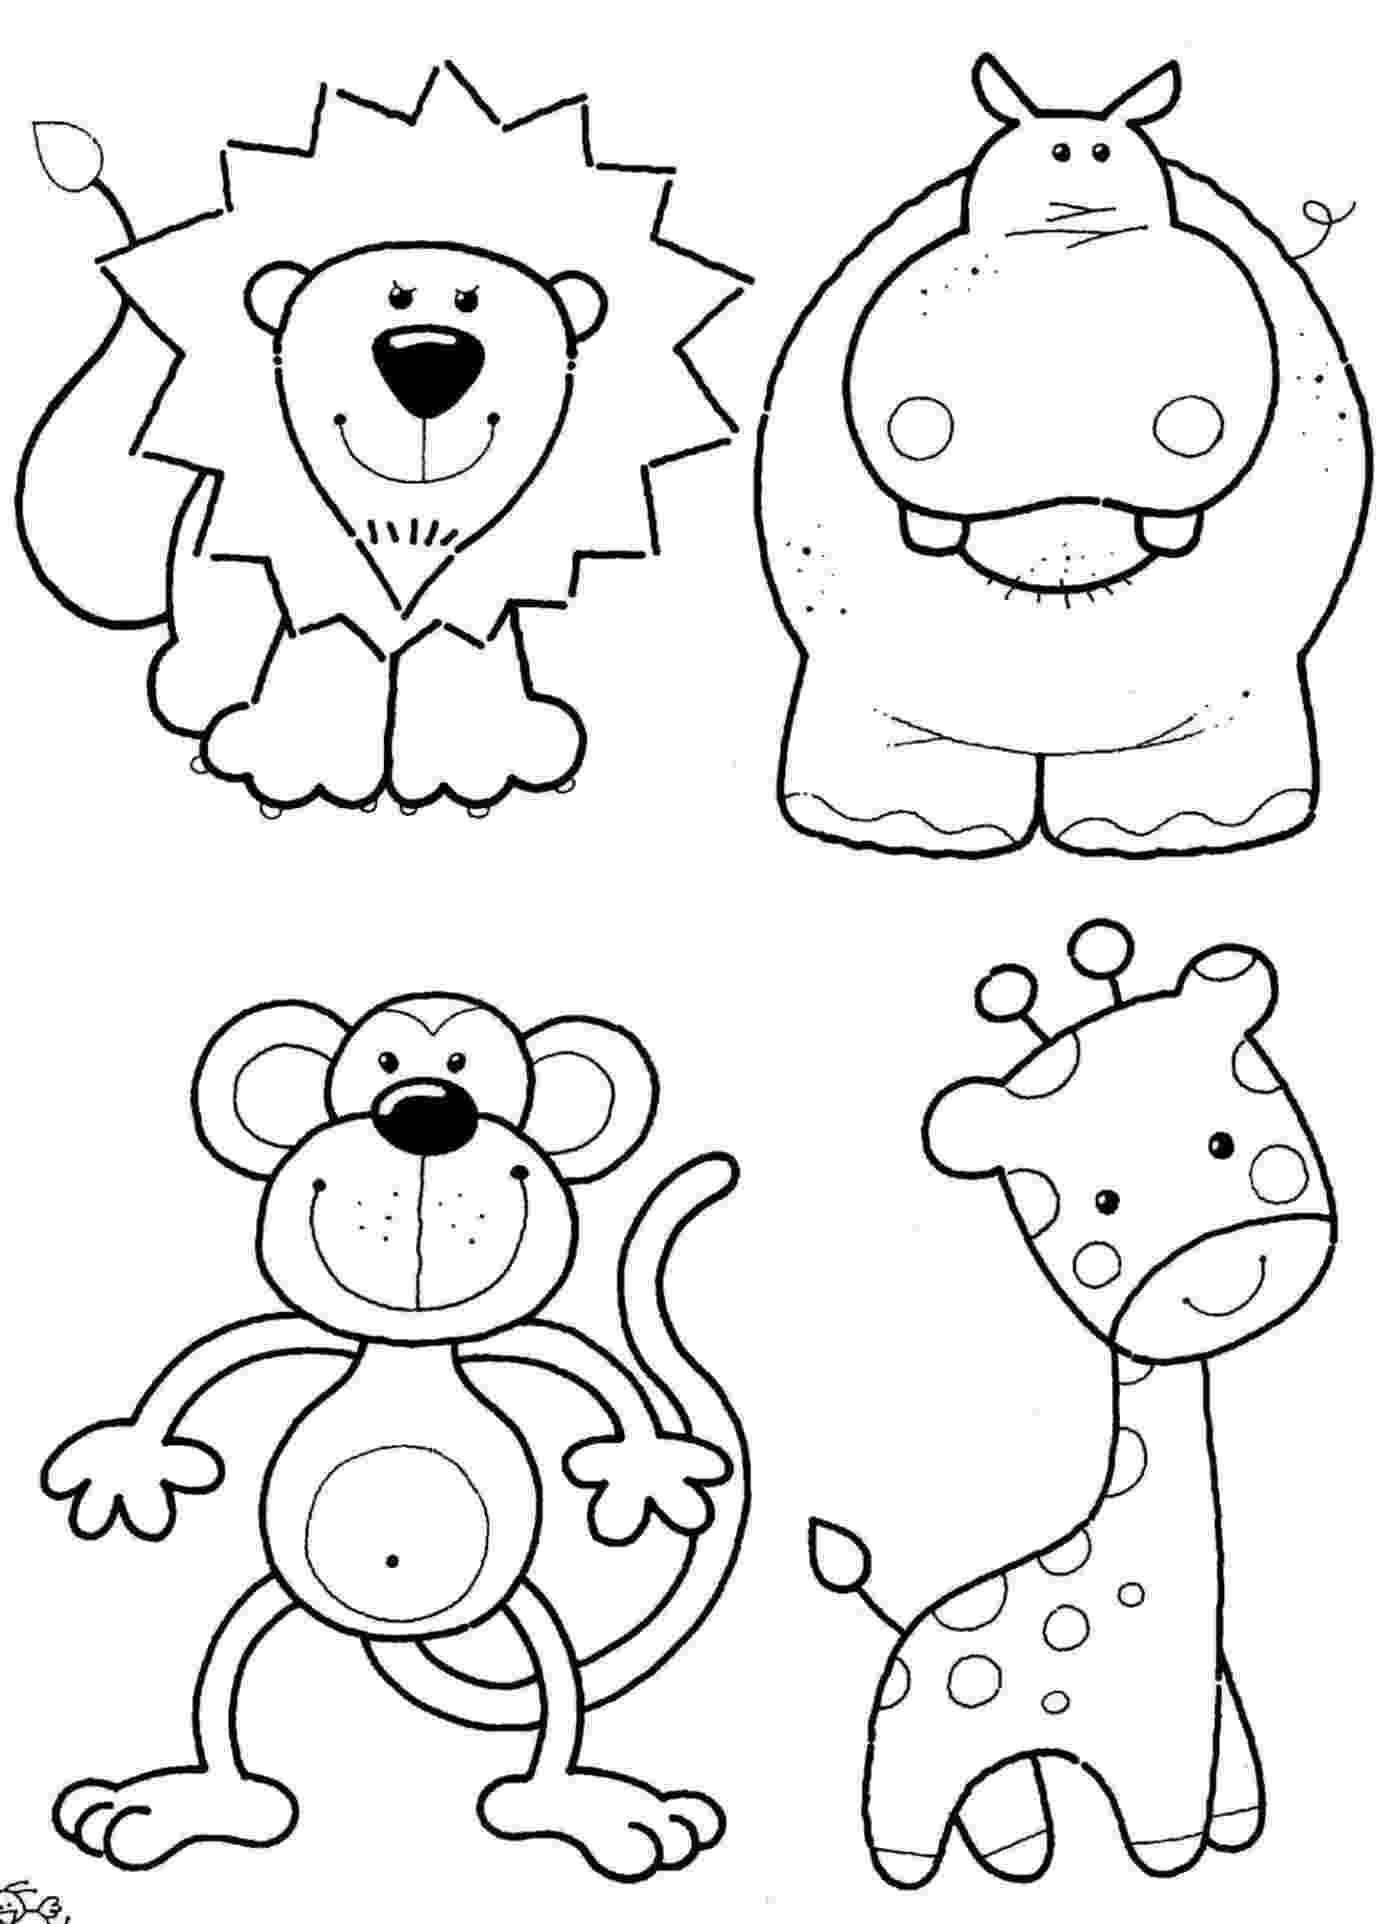 colouring pages animals to print 30 free coloring pages a geometric animal coloring print to pages animals colouring